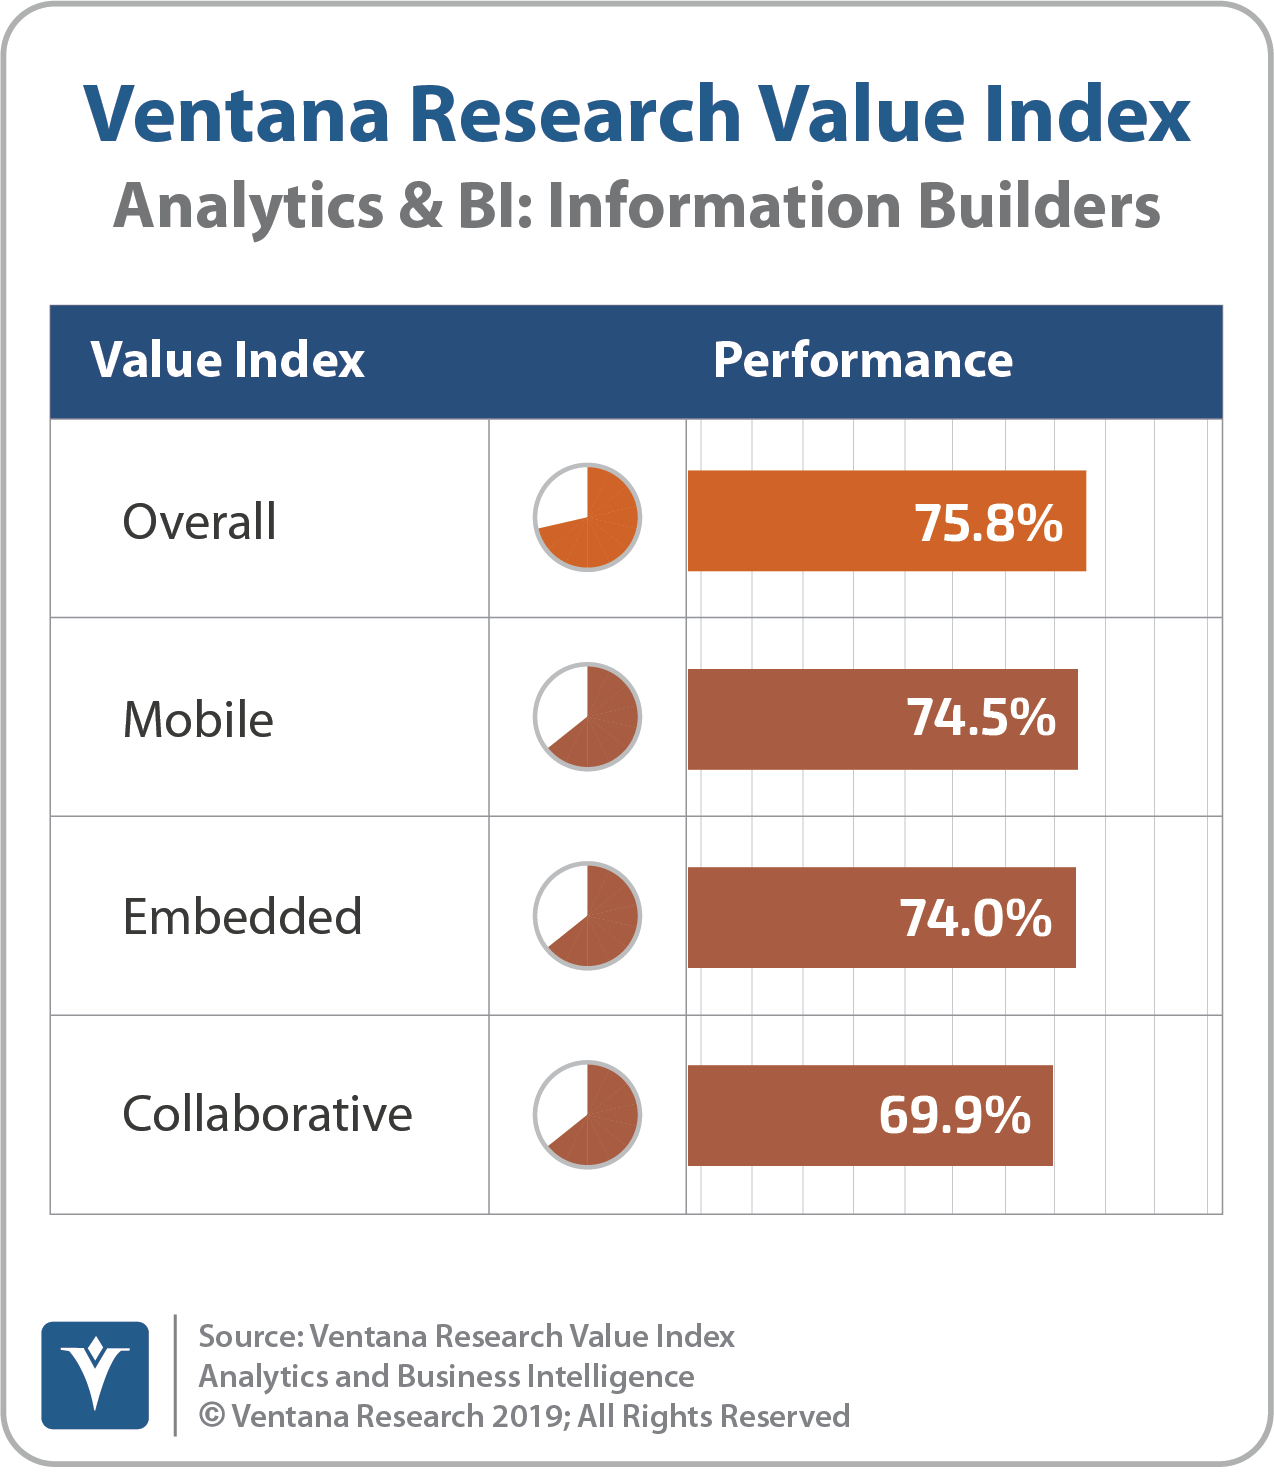 Ventana_Research_Value_Index_Analytics&BI_2019_COMBINED_InfoBuilders